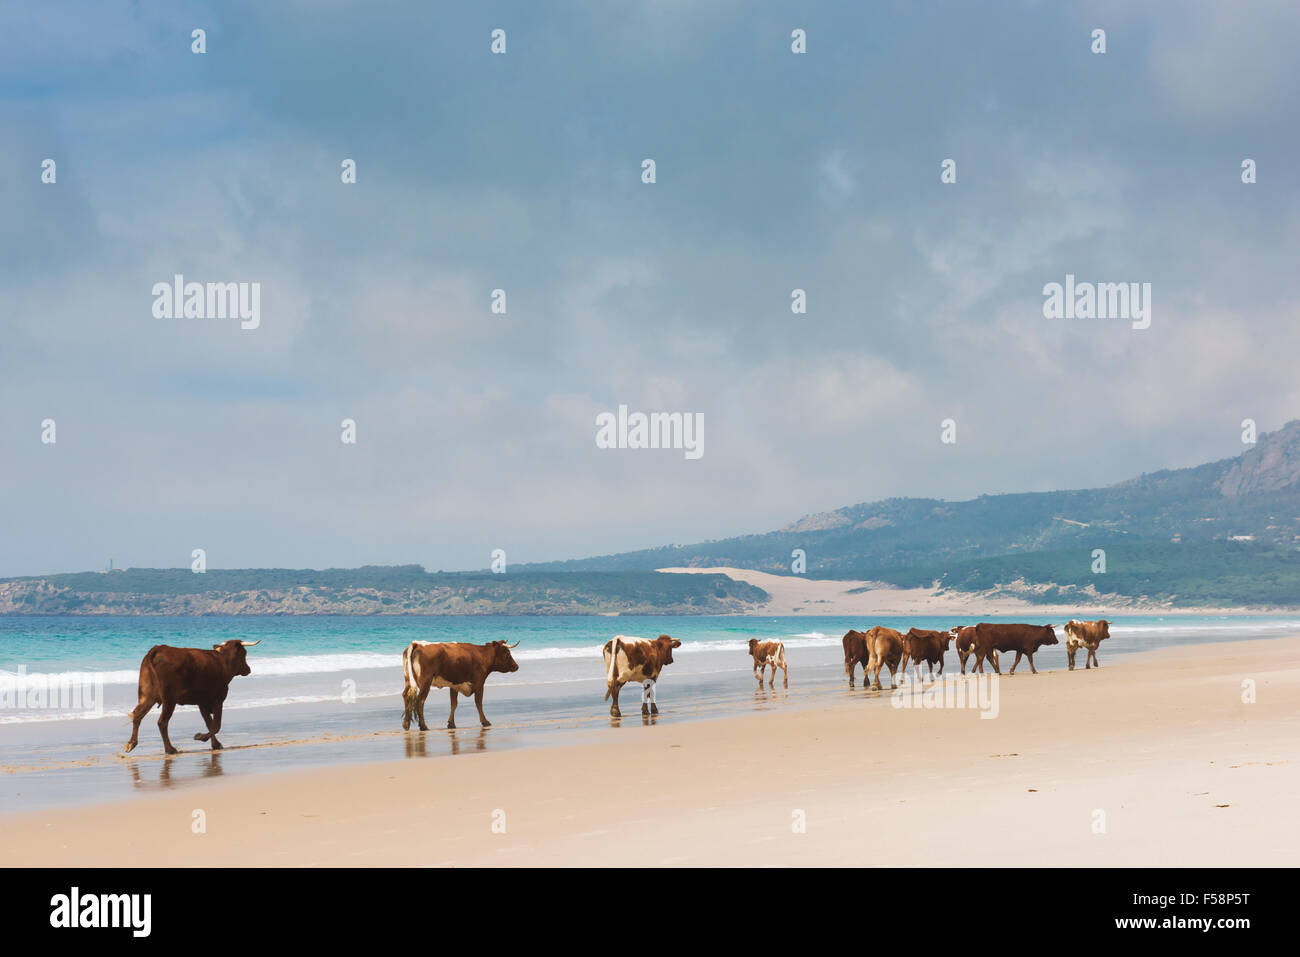 Group of cows walking along the beach. Bolonia, Tarifa, Costa de la Luz, Andalusia, Southern Spain. Stock Photo